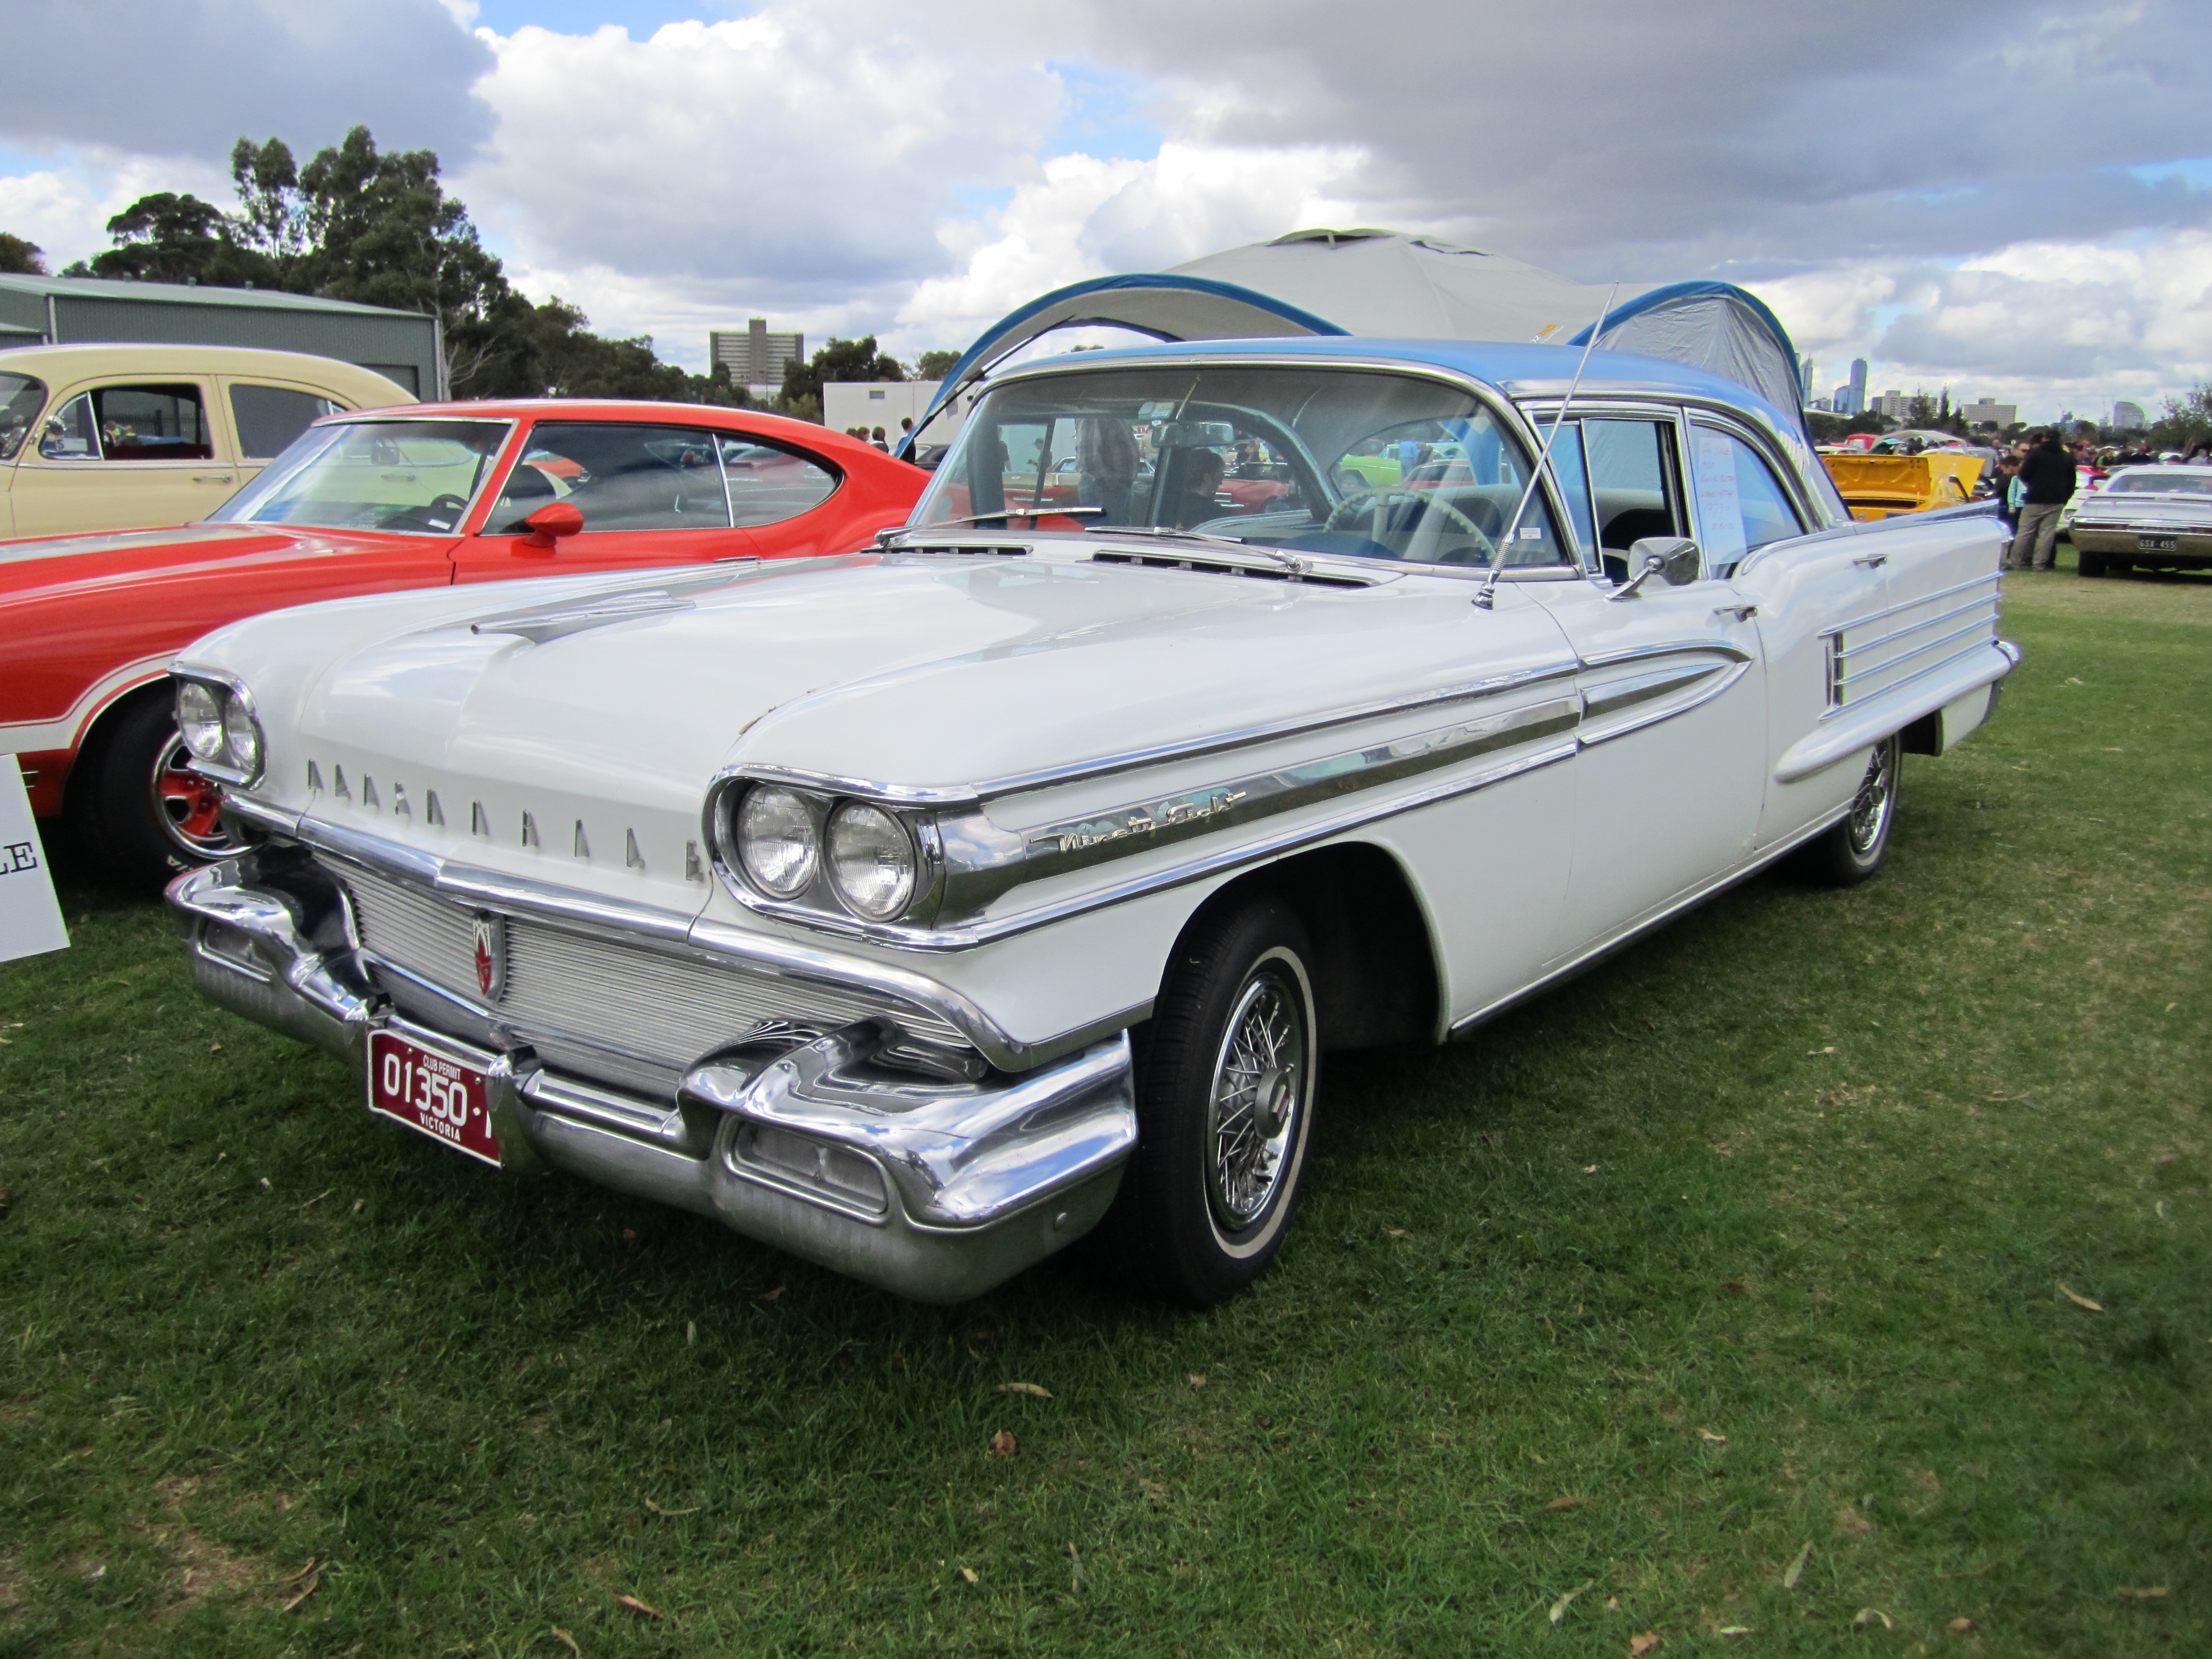 File:1958 Oldsmobile 98 Sedan.jpg